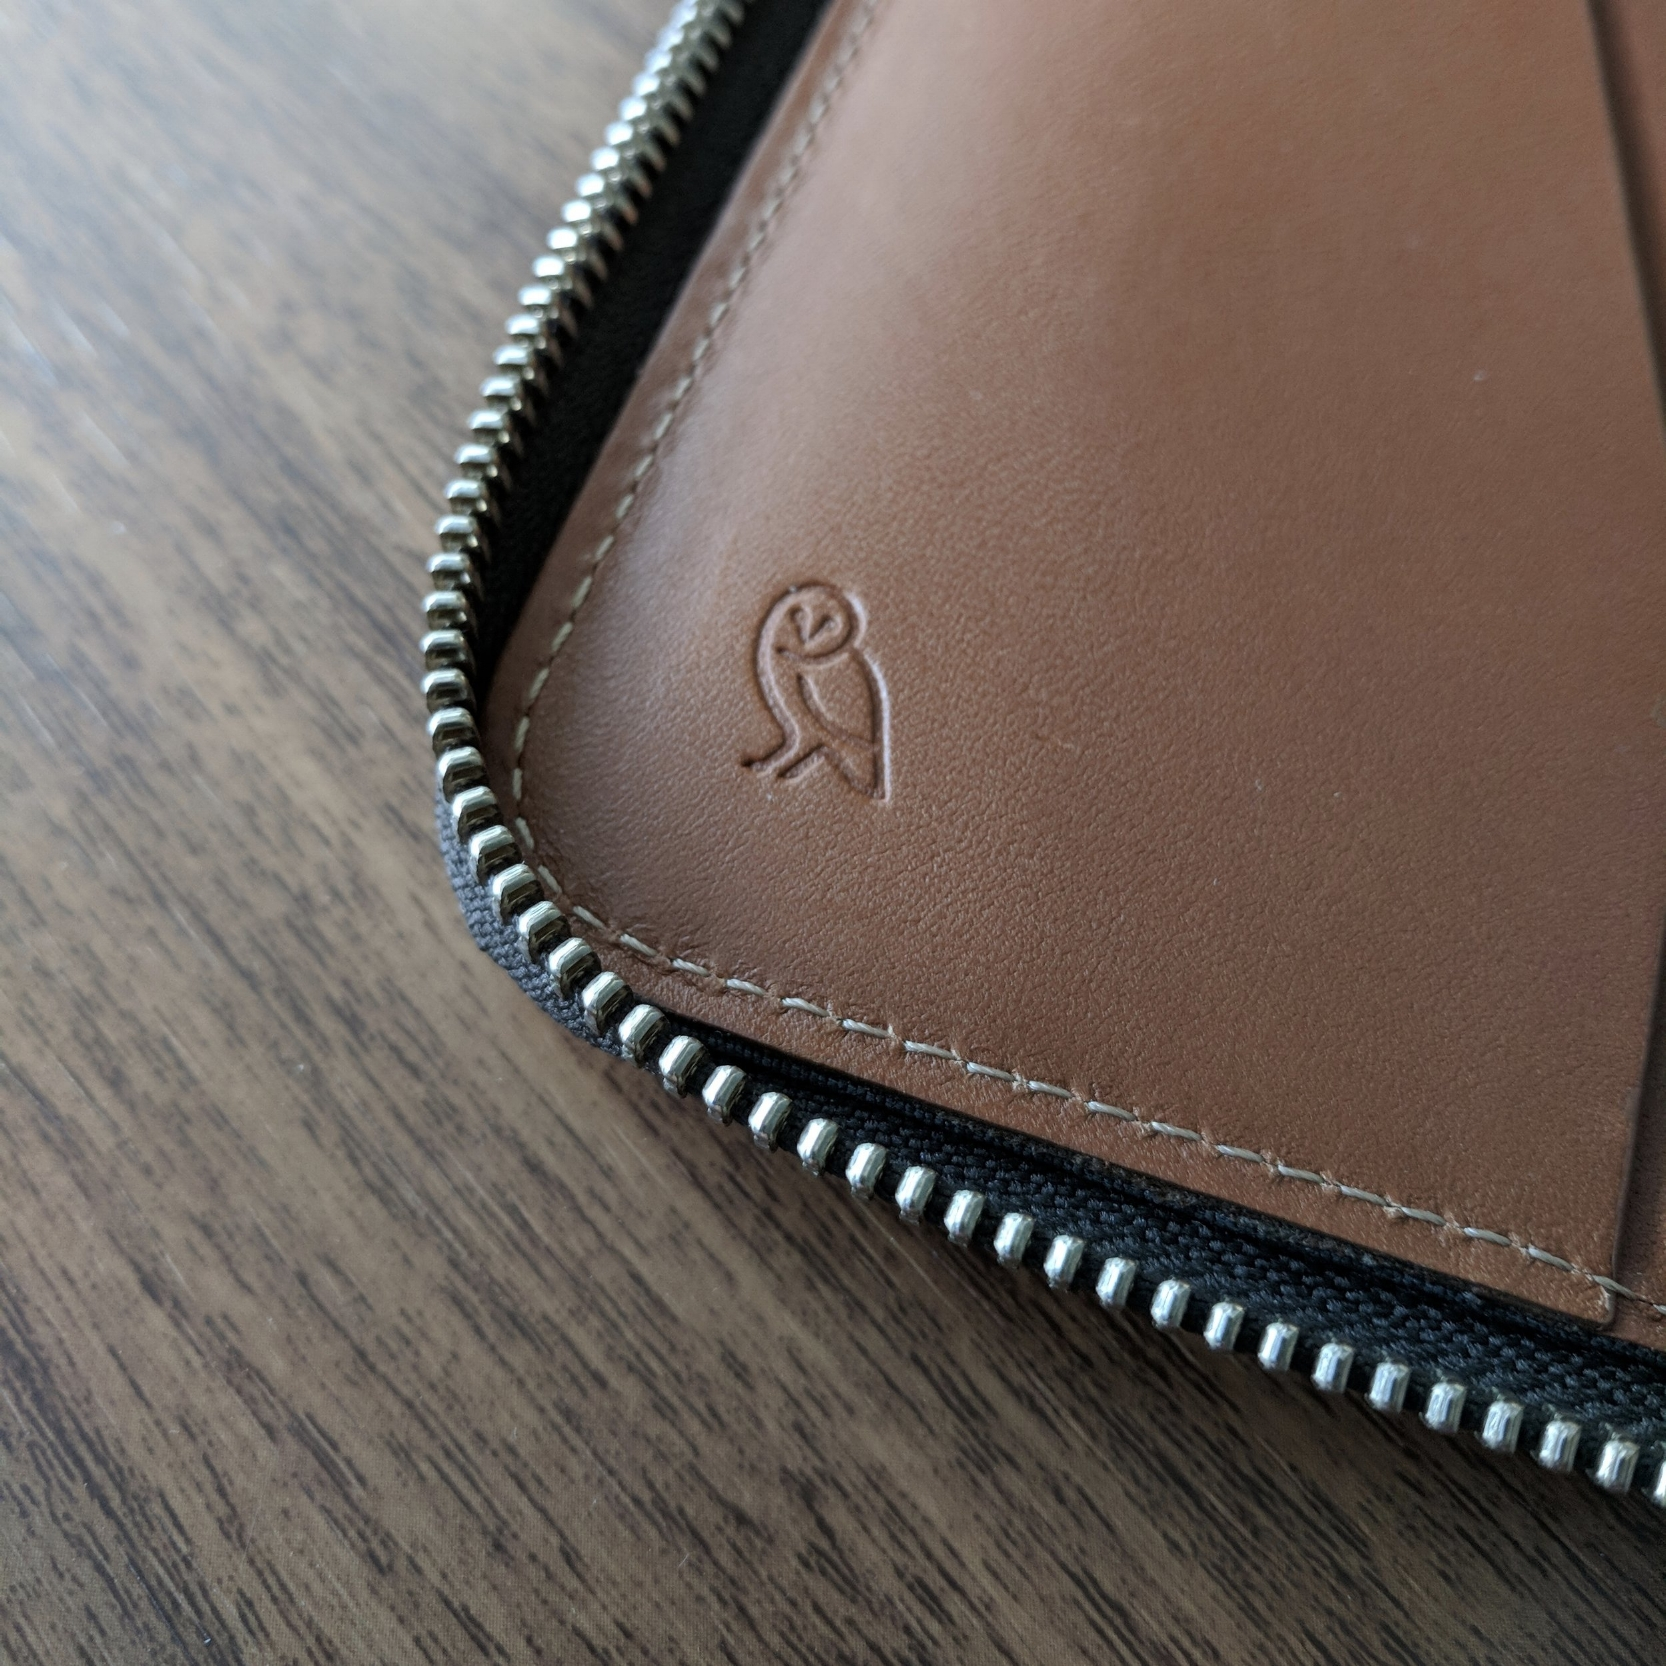 The Work Folio features a heavy duty zipper and Bellroy's trademark owl logo.